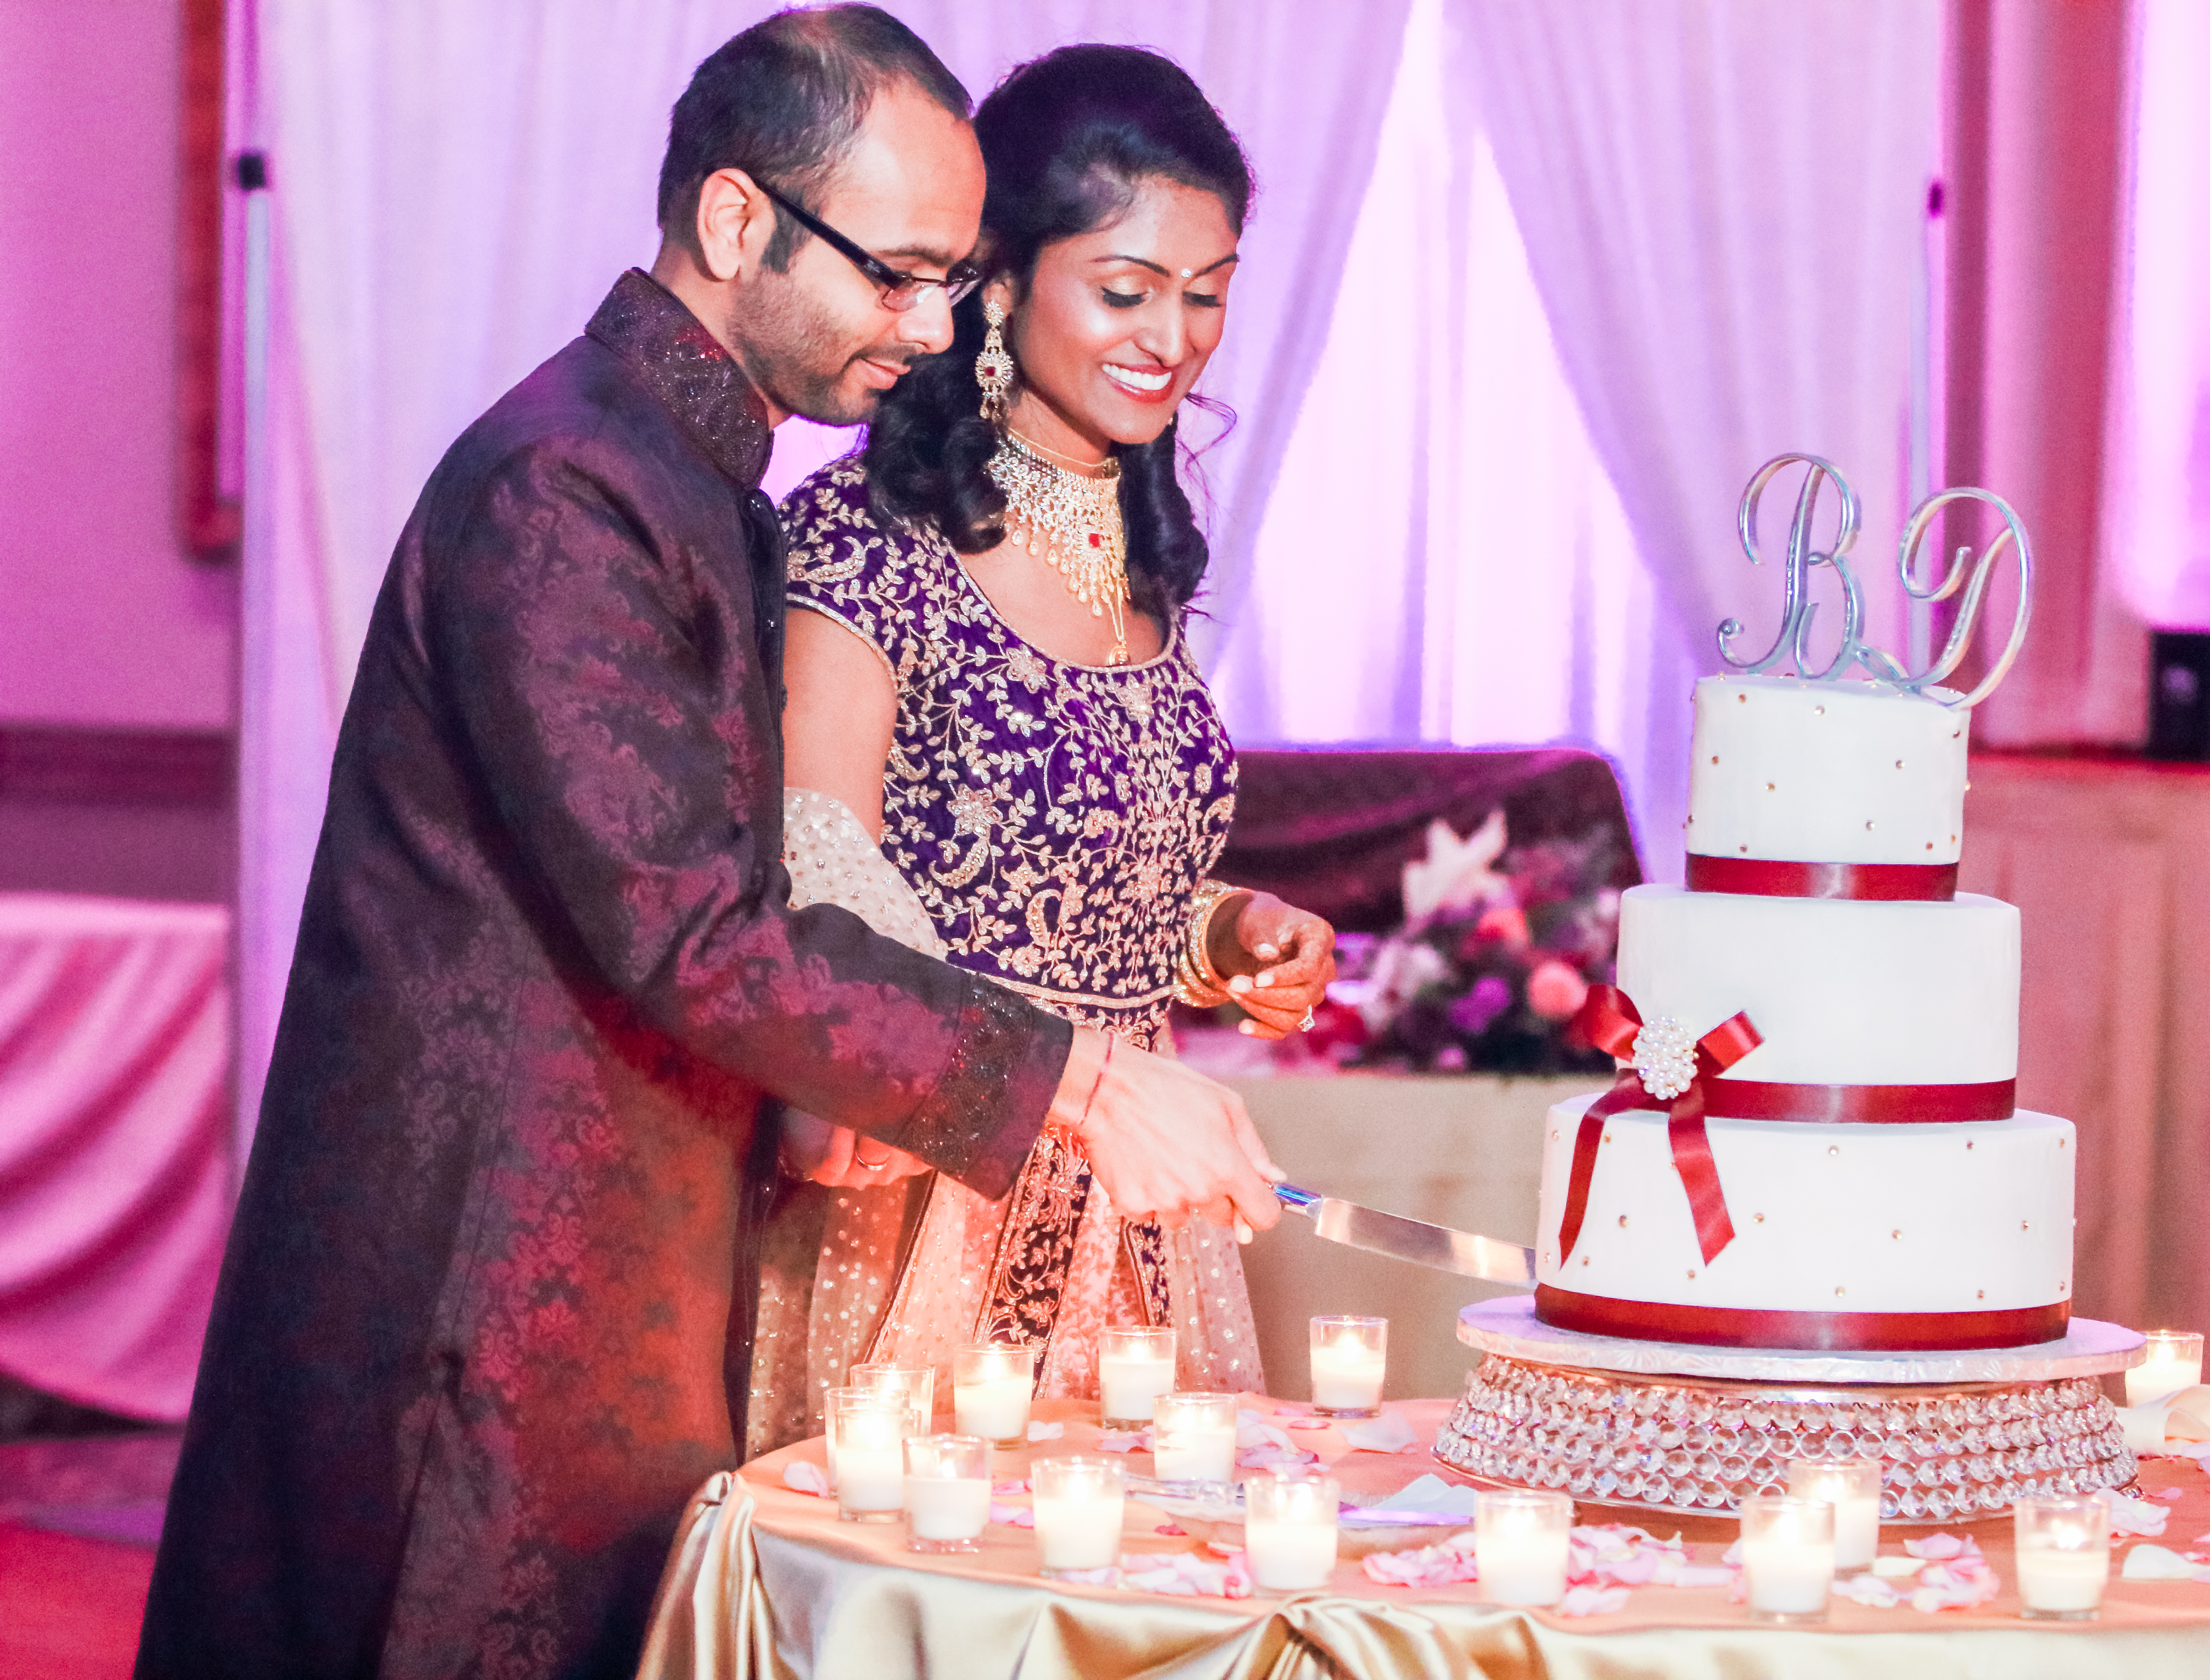 Chicago American & Indian Wedding Photographer | DARS Photography